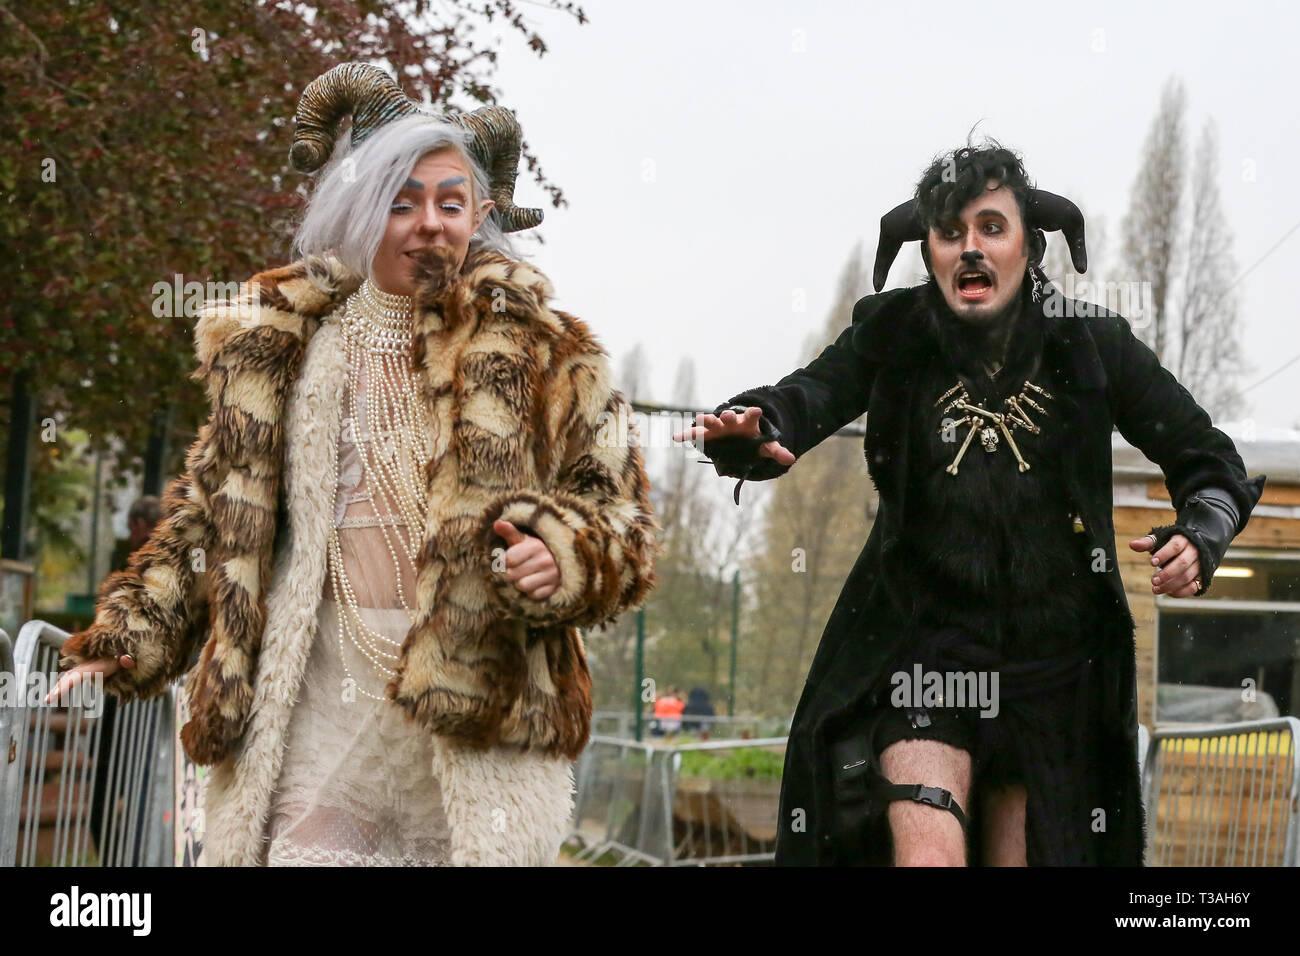 People dressed in goats outfits are seen running before the Oxford vs Cambridge Goat Race in East London. Two pygmy goats compete during the 10th Oxford and Cambridge Goat Race at Spitalfields City Farm, Bethnal Green in East London. The annual fundraising event, which takes place at the same time as the Oxford and Cambridge boat race, where two goats, one named Hamish representing Oxford and the other Hugo representing Cambridge to be crowned King Billy. - Stock Image